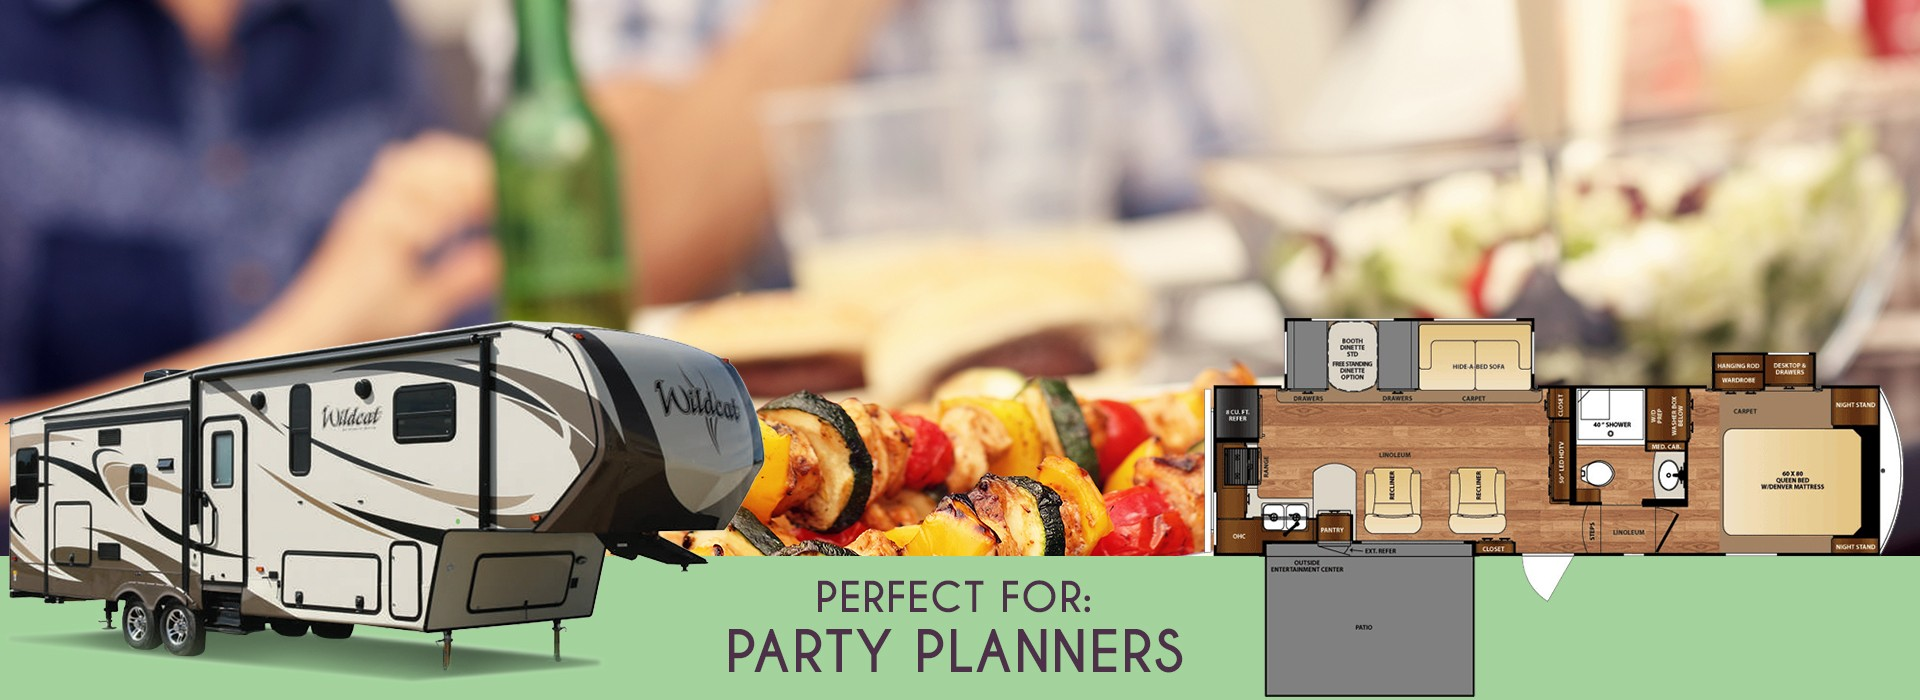 Forest River Wildcat 29RKP: perfect for party planners